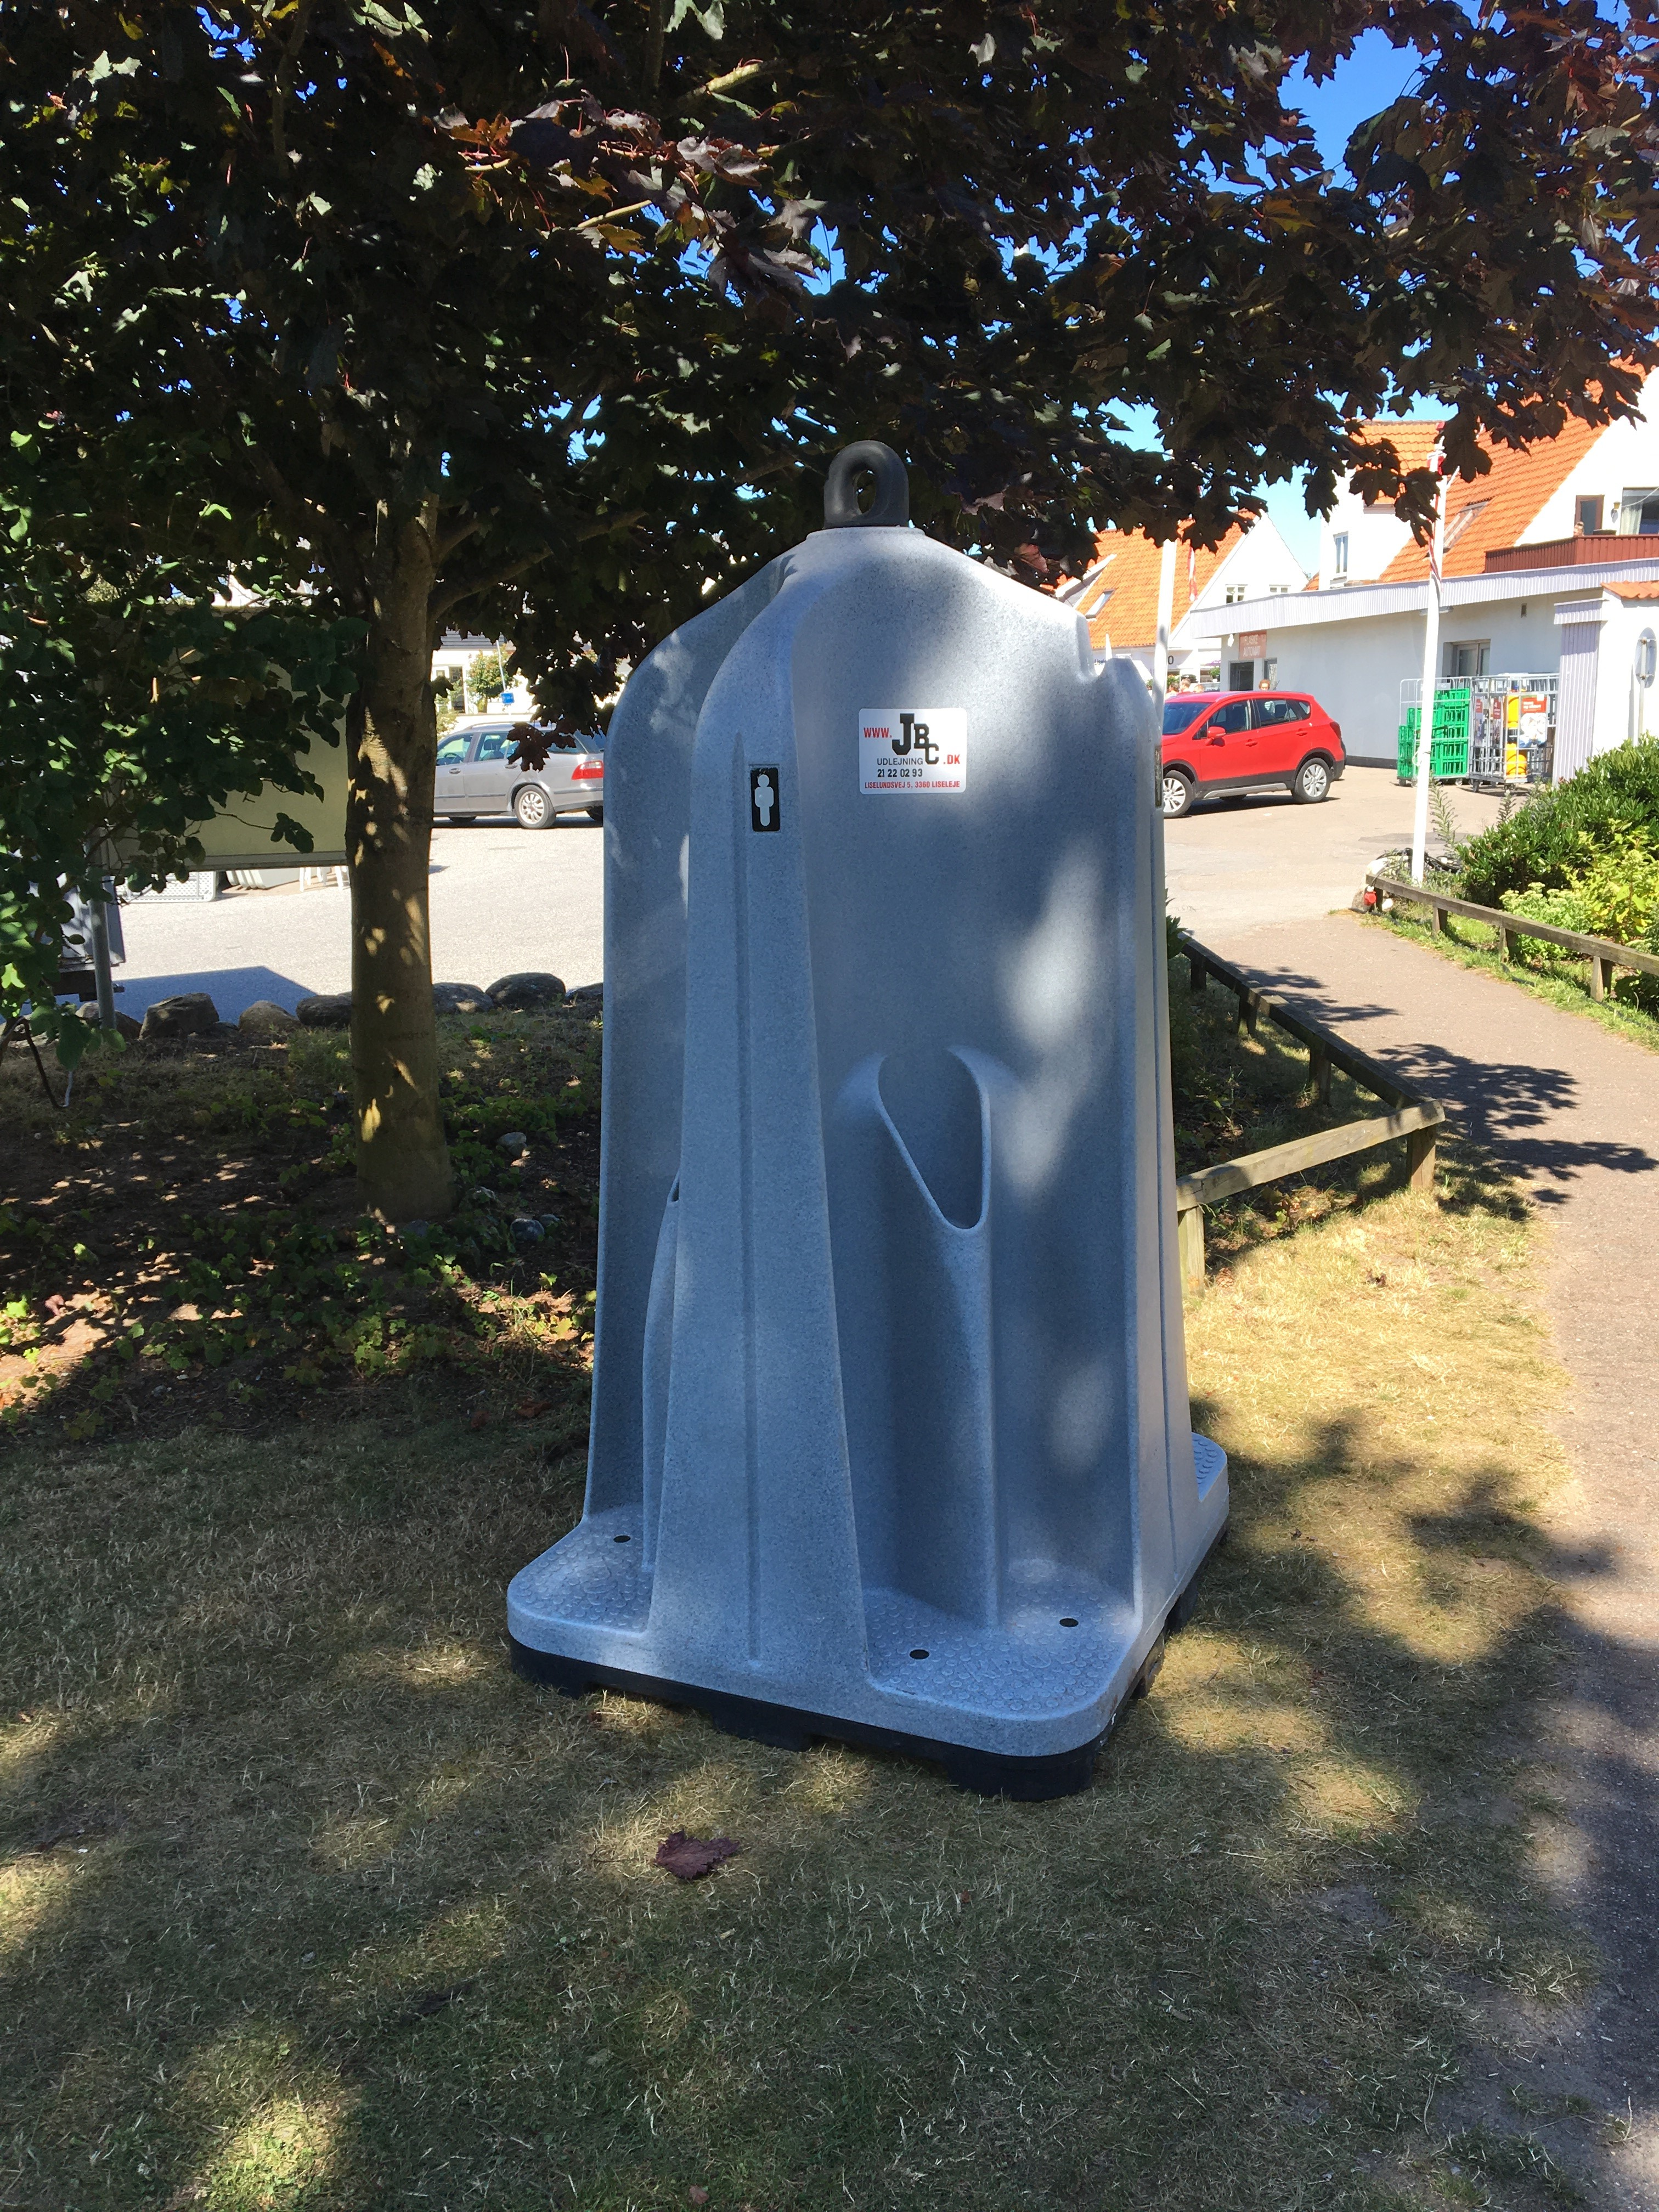 Urinal/pissoir